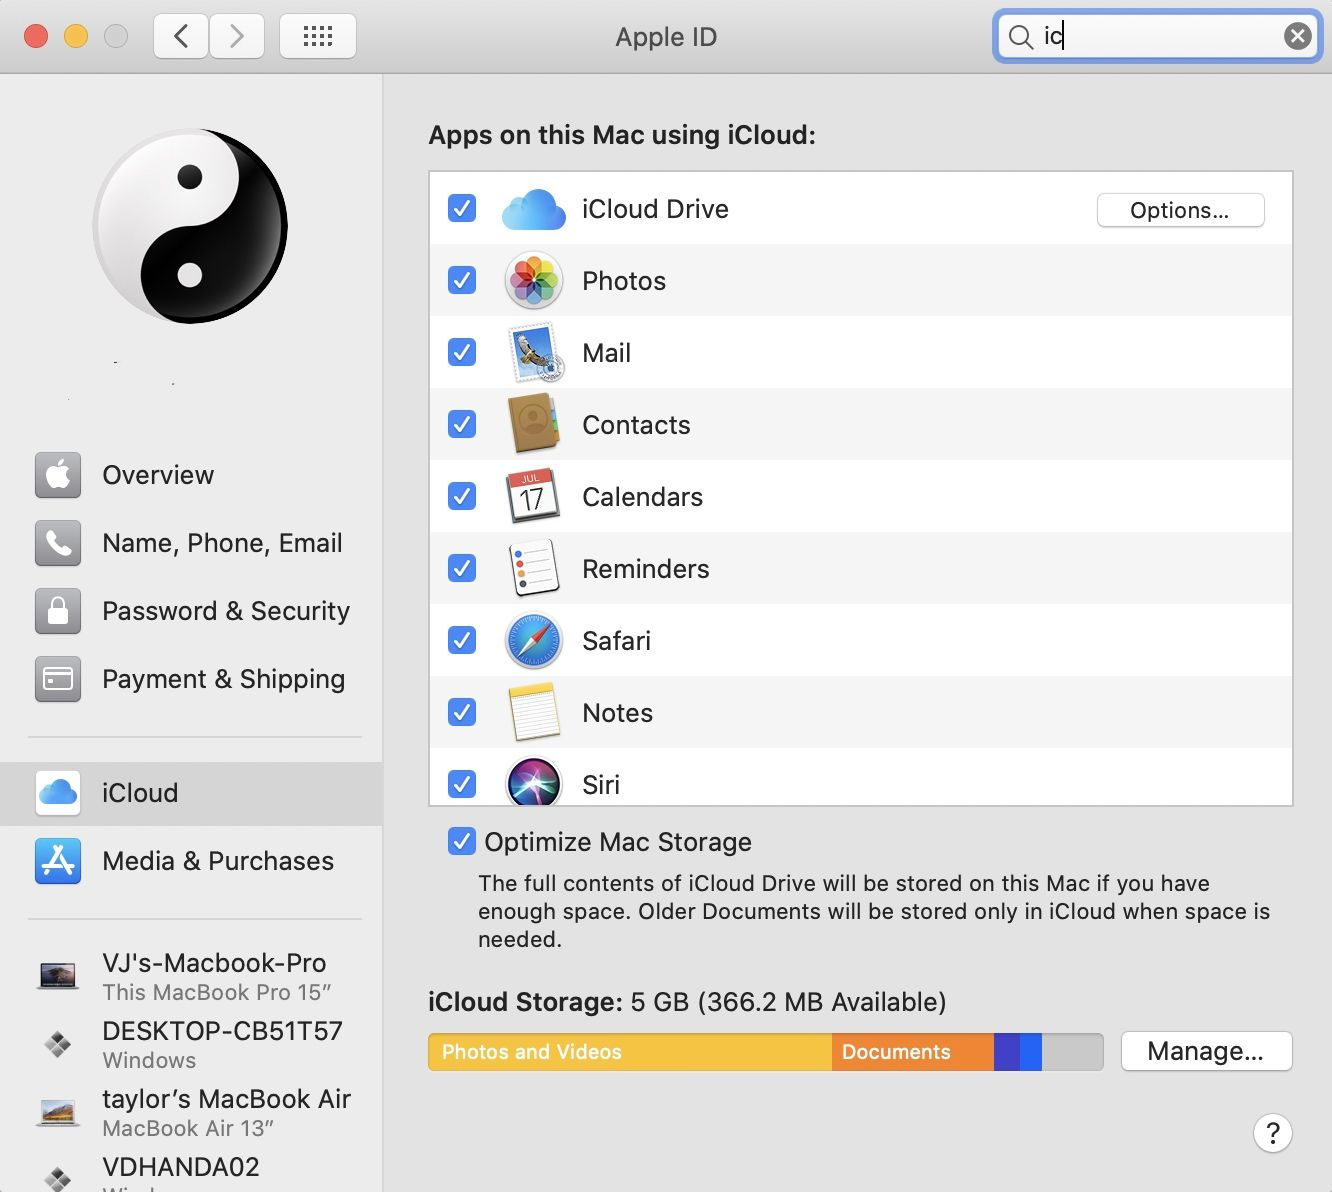 How to unsubscribe for Apple iCloud Storage?